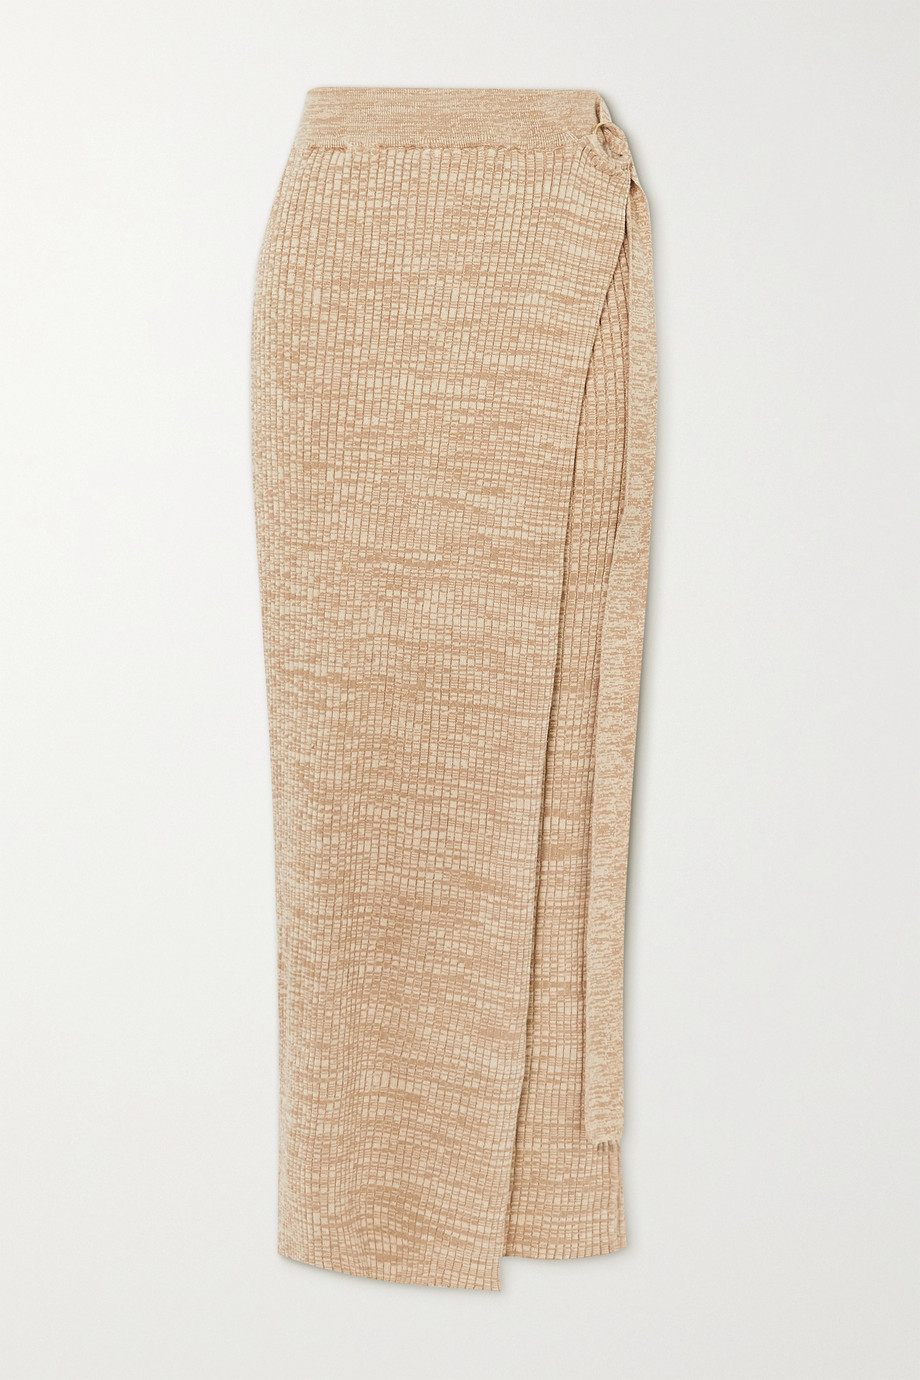 ANNA QUAN Matilde layered ribbed cotton maxi skirt